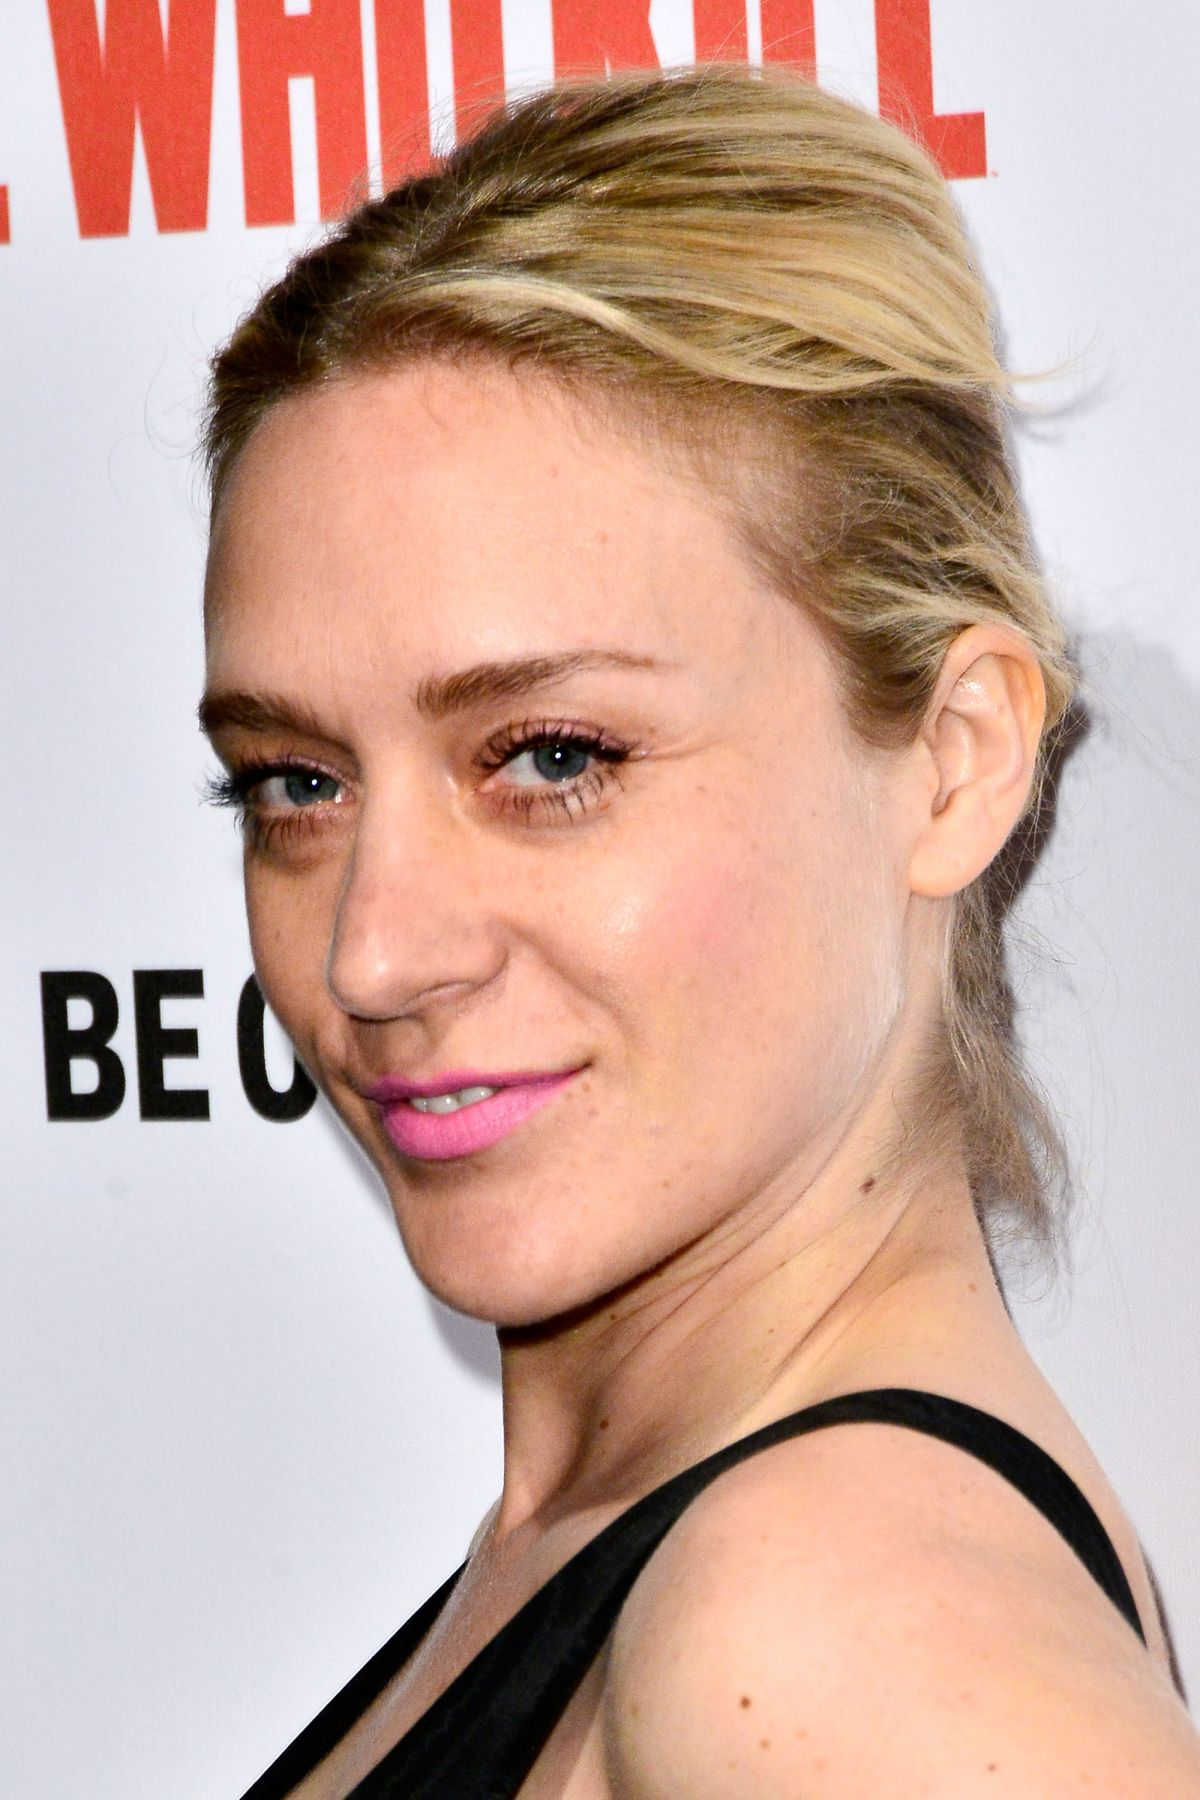 chloe-sevigny-at-season-two-of-bates-motel-premiere-party_2.jpg